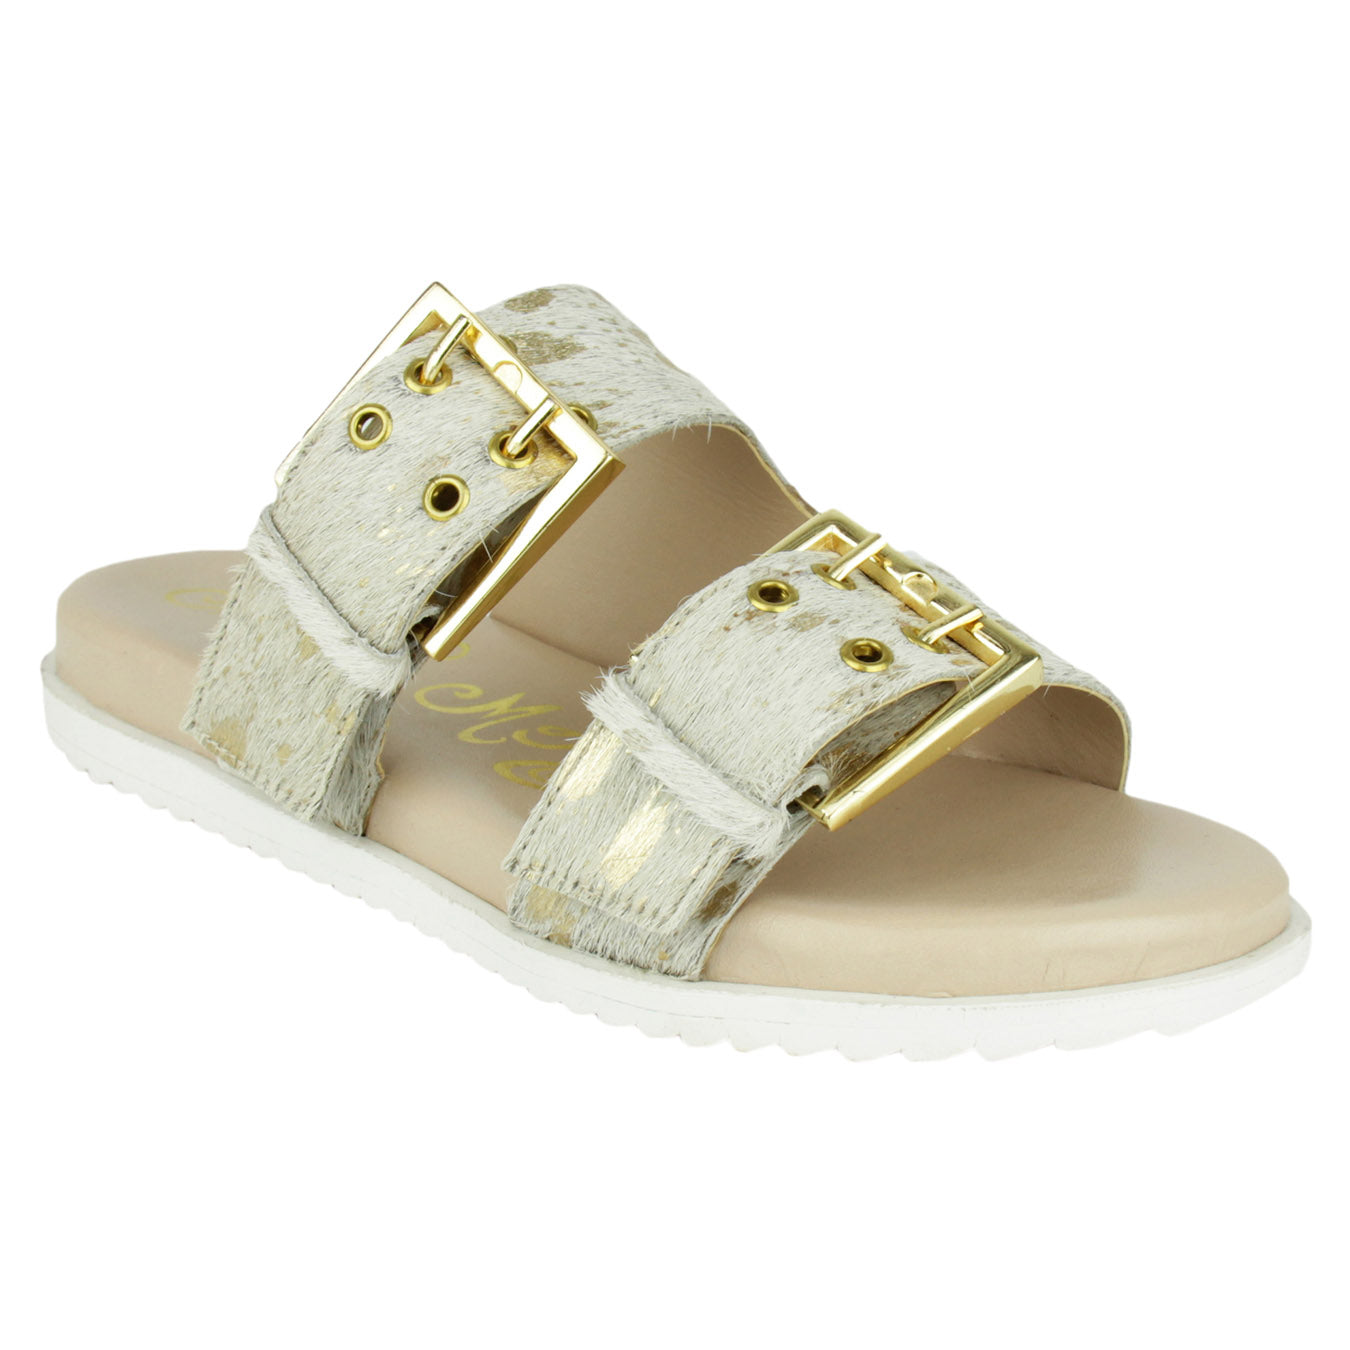 naughty_monkey_sandal_flat_buckles_pony_hair_women_white_gold